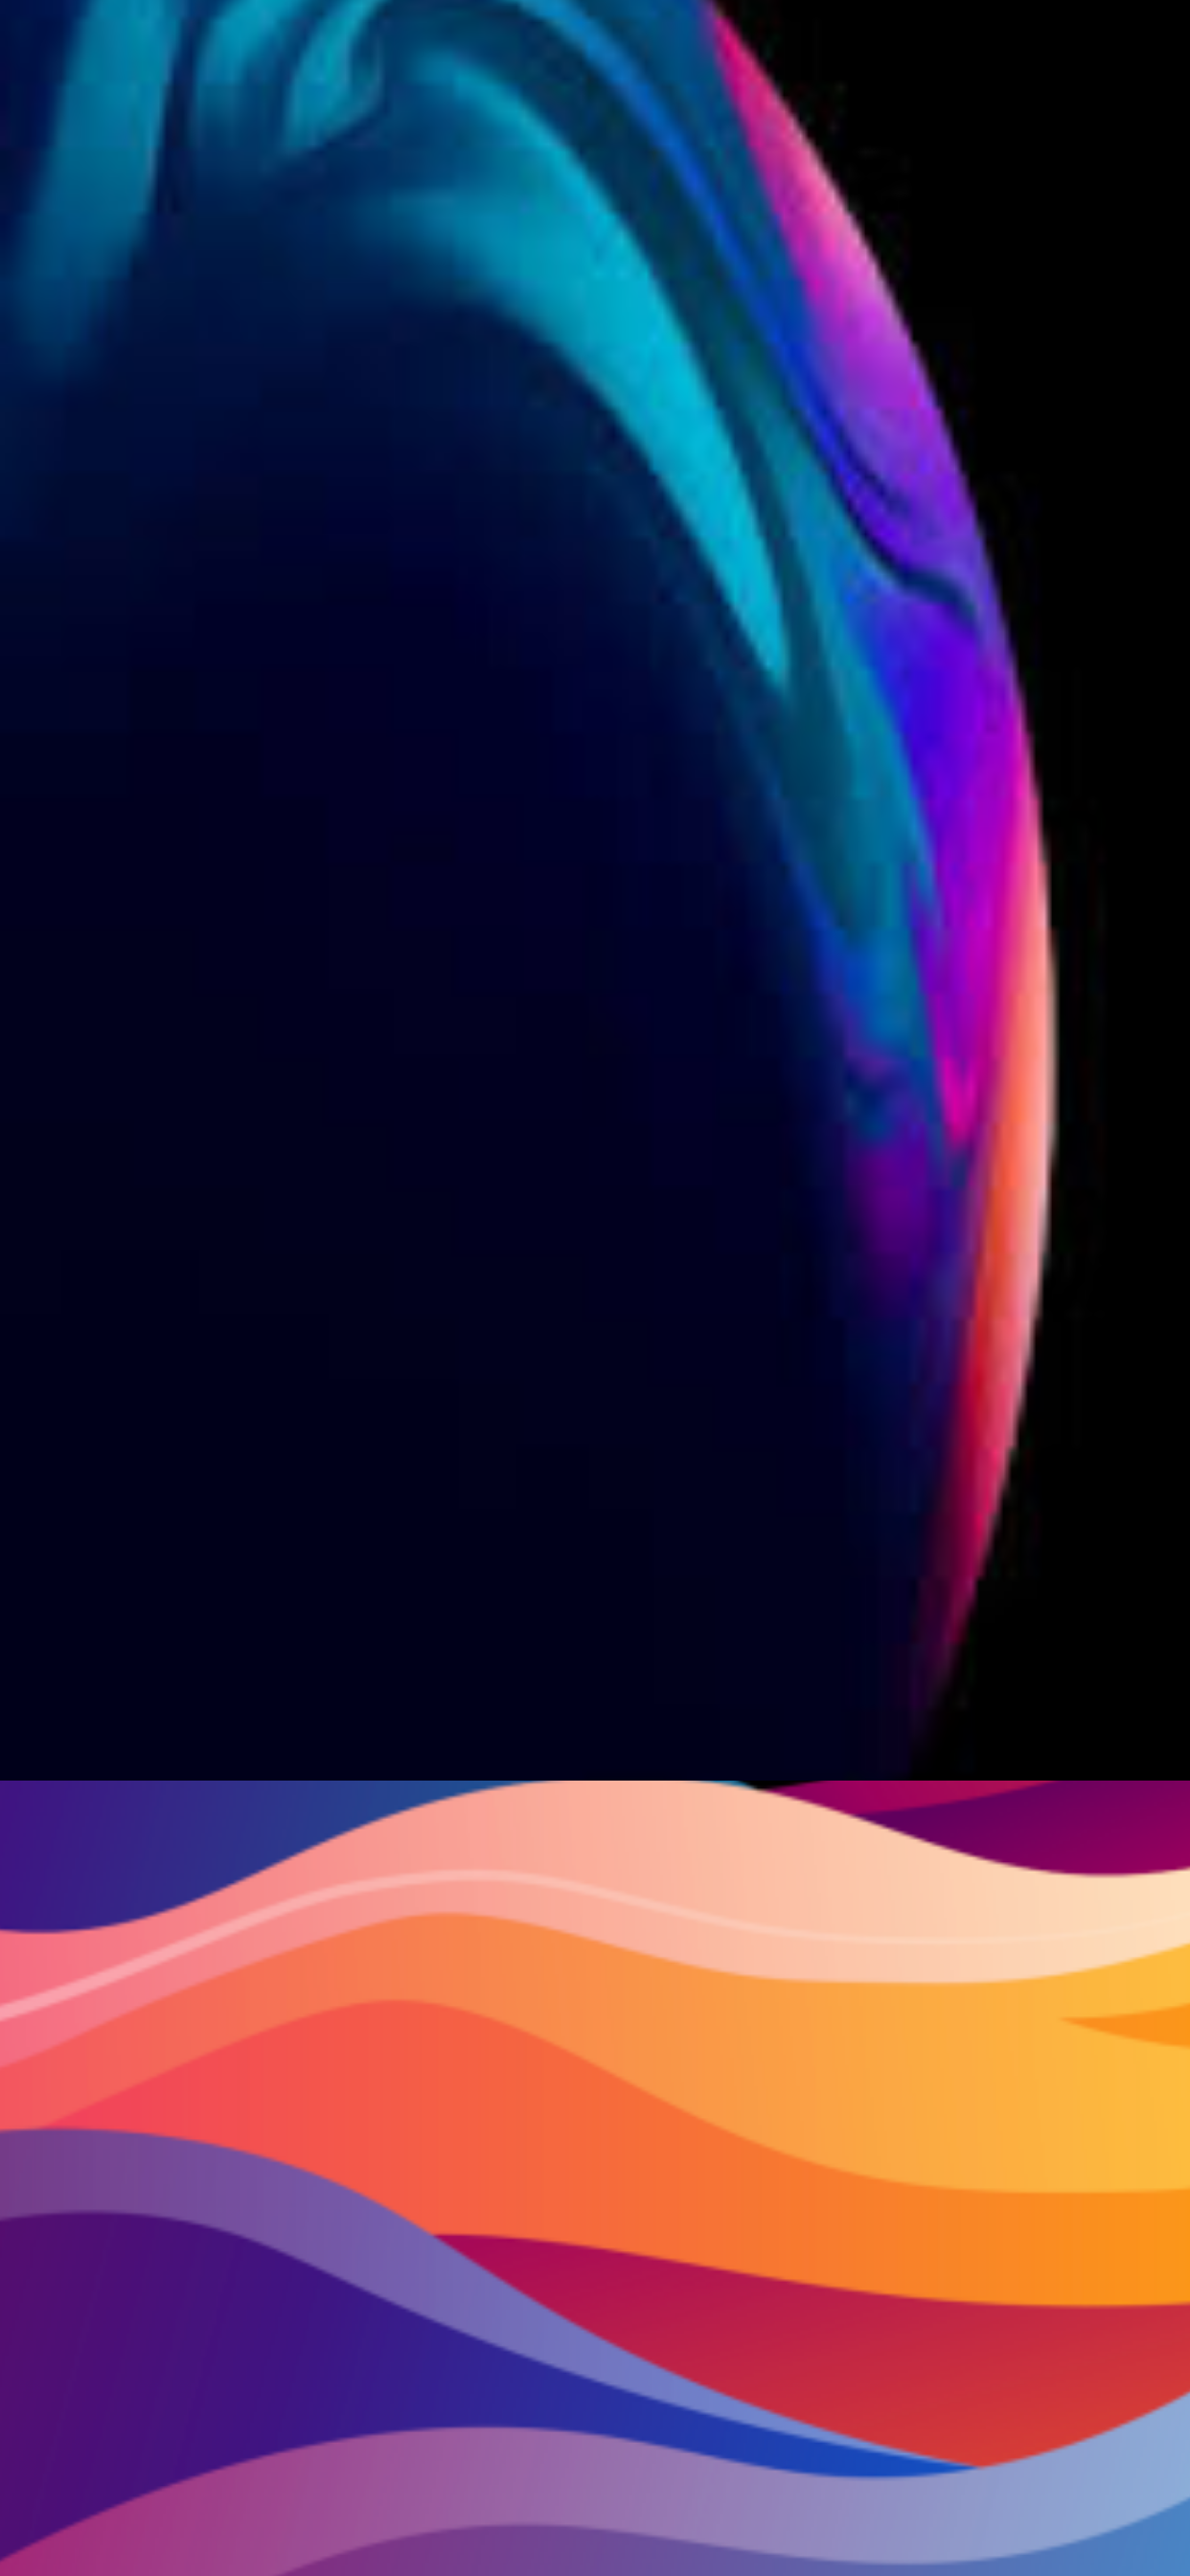 iPhone 12 Pro Max Wallpapers 1242x2688